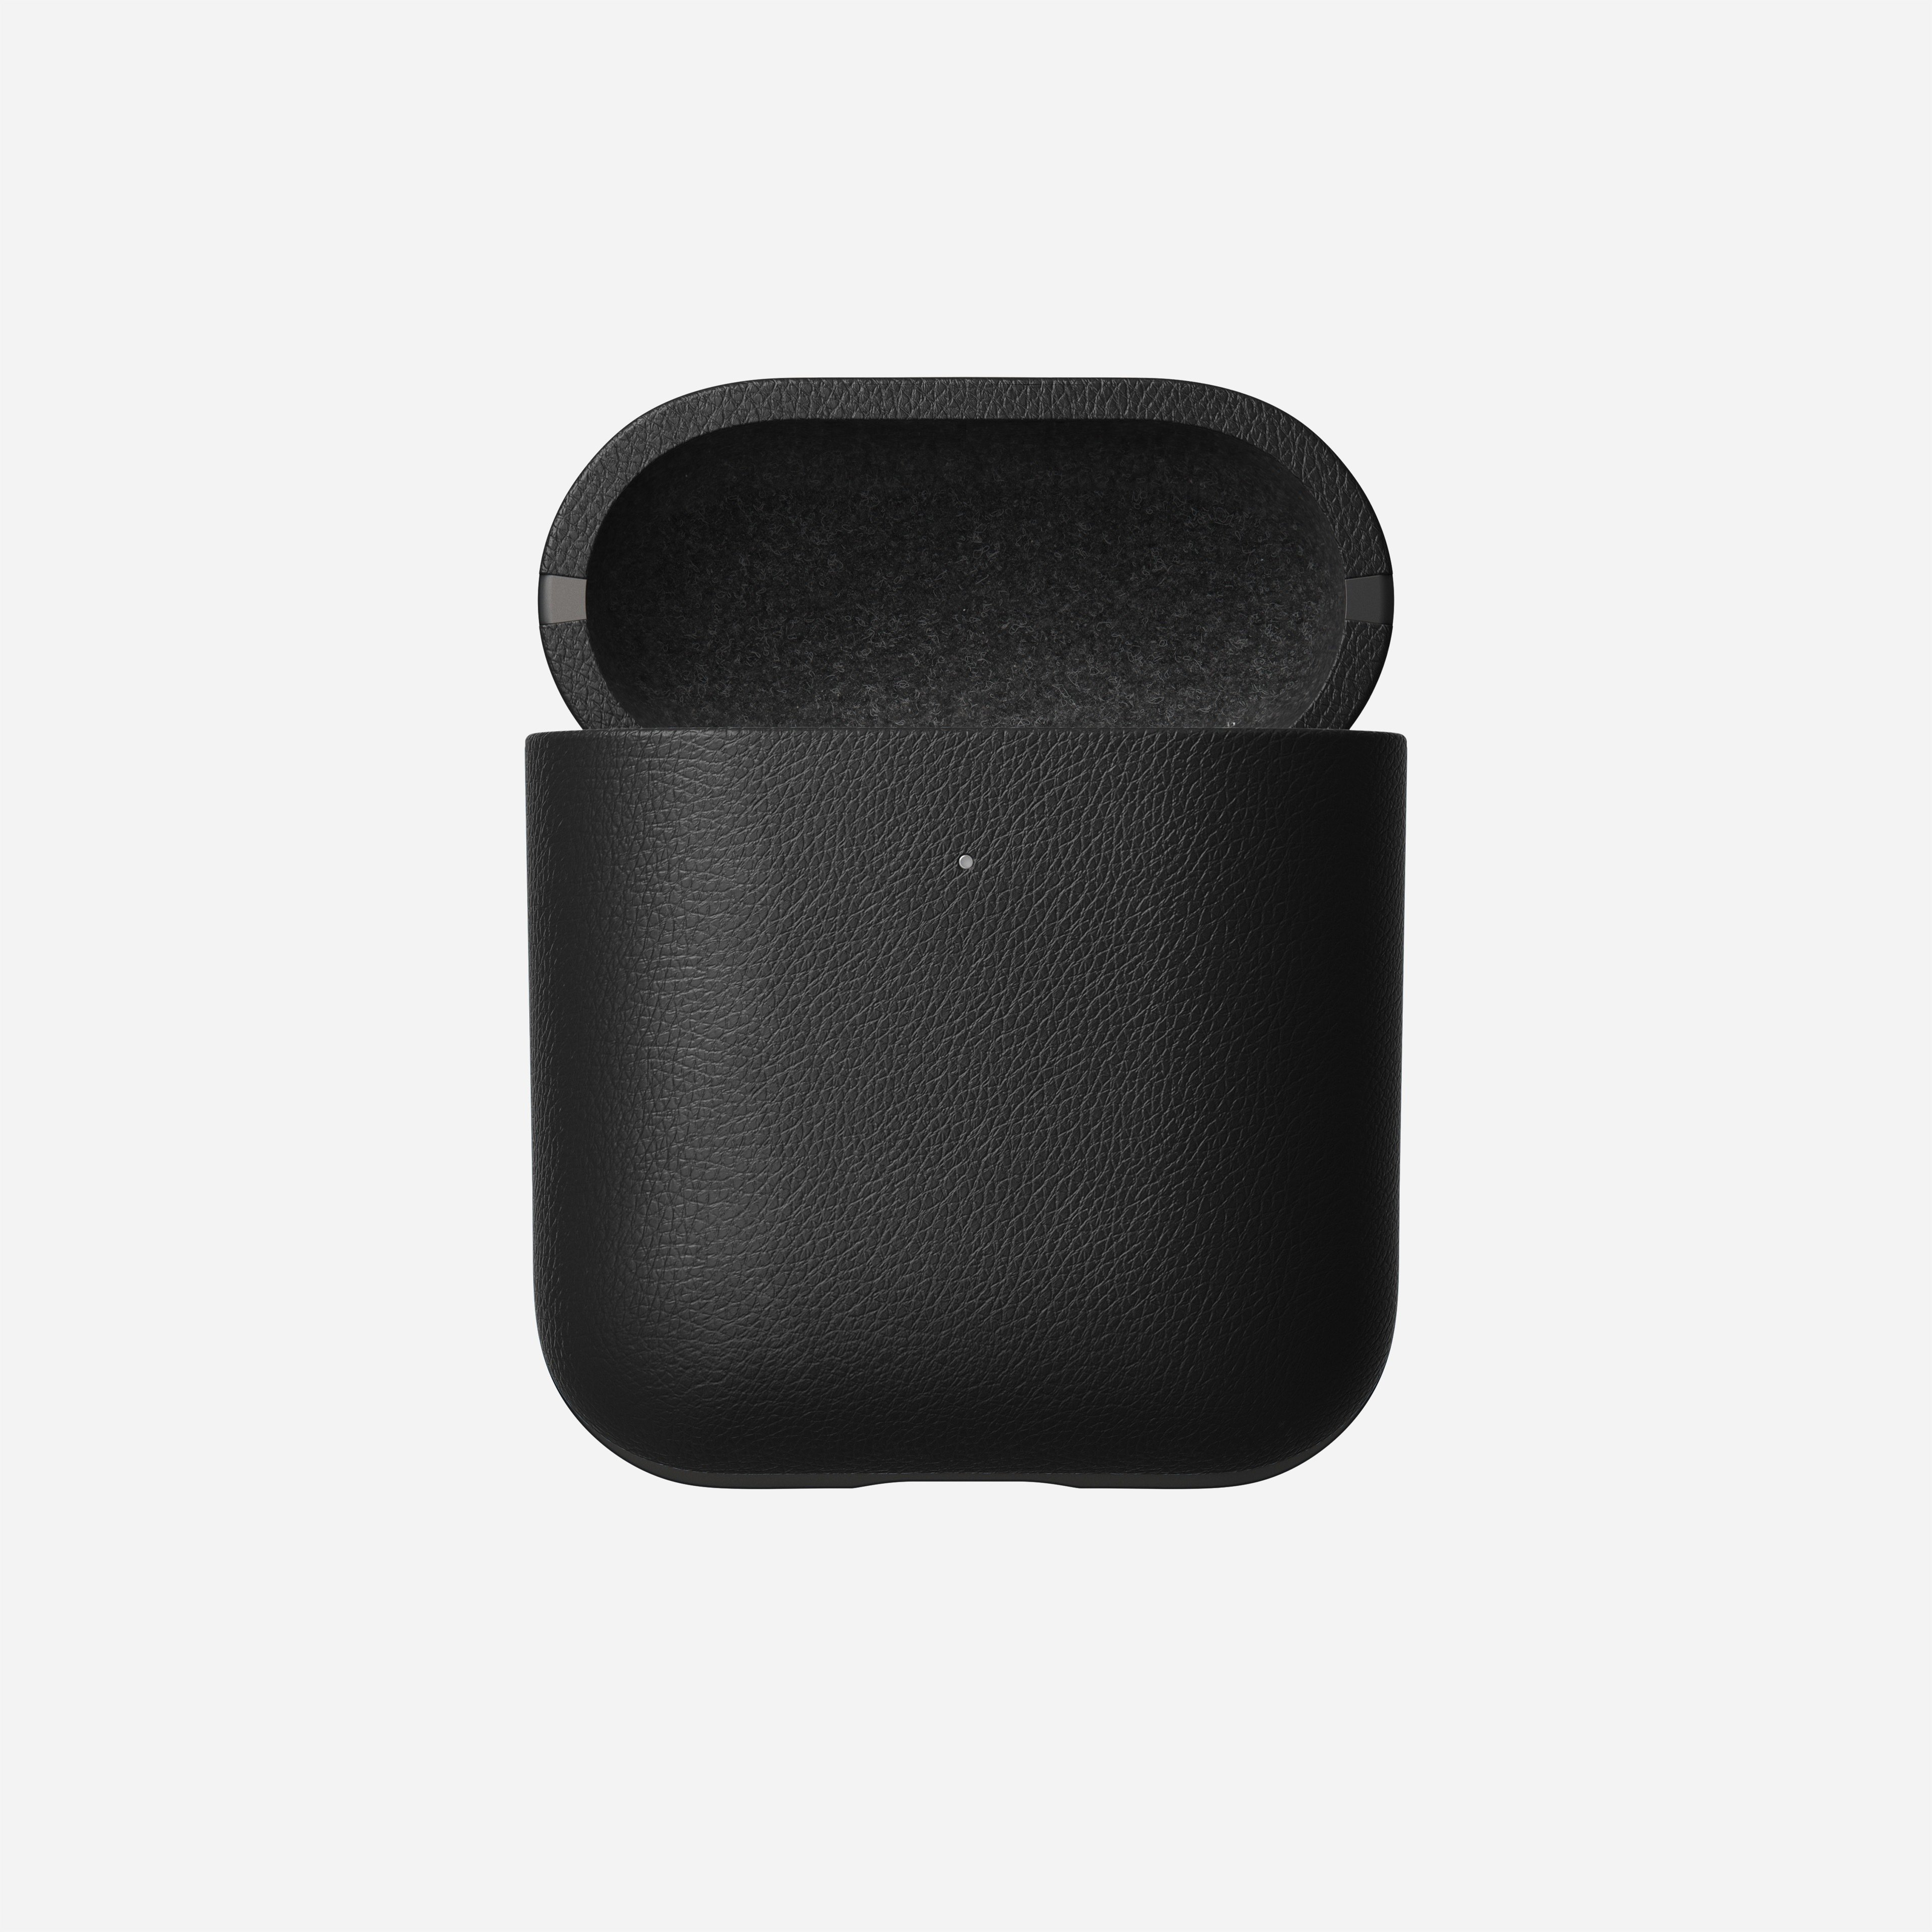 Active rugged case airpods wireless black